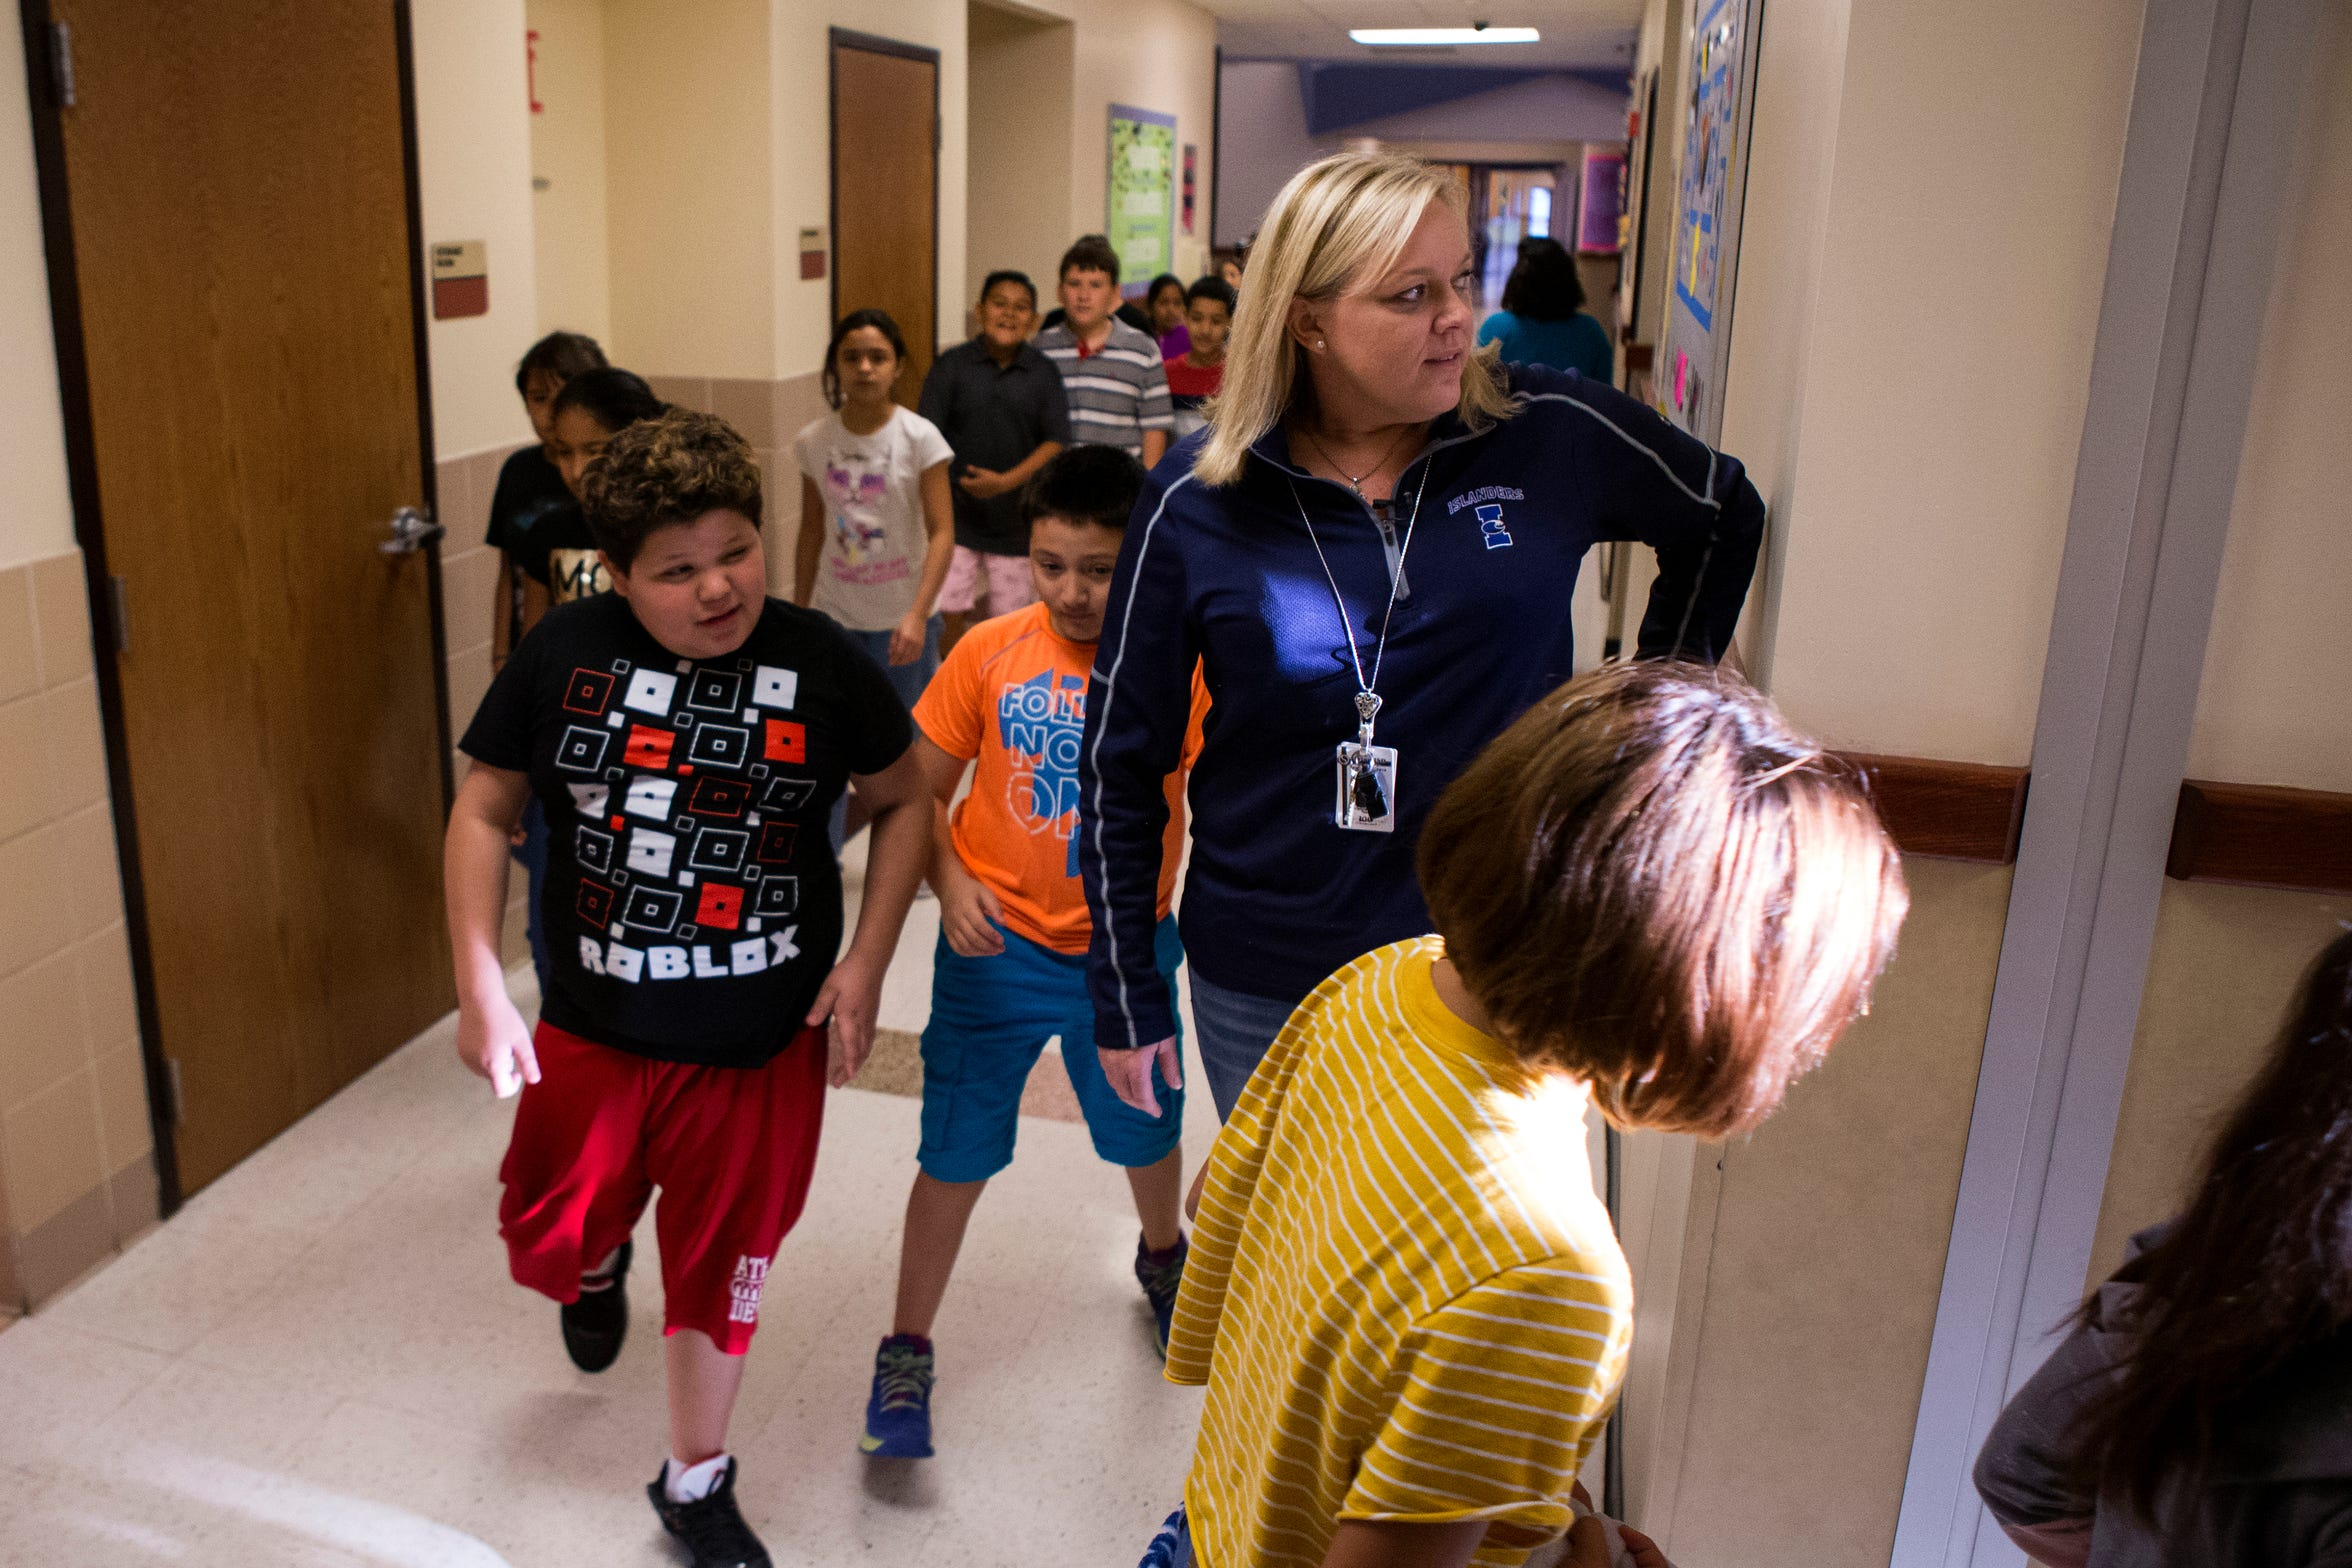 "Christine Kidd McFarland, a fifth-grade teacher at Sinton Elementary School in Sinton, Texas, drops her class off at PE before returning to her class to meet with other fifth grade teachers to plan on Monday, September 17, 2018. ""I wish I had more time to plan lessons that were more engaging for students,"" she said. ""I feel like we work real hard to find good lessons but then we find that we run out of time."""